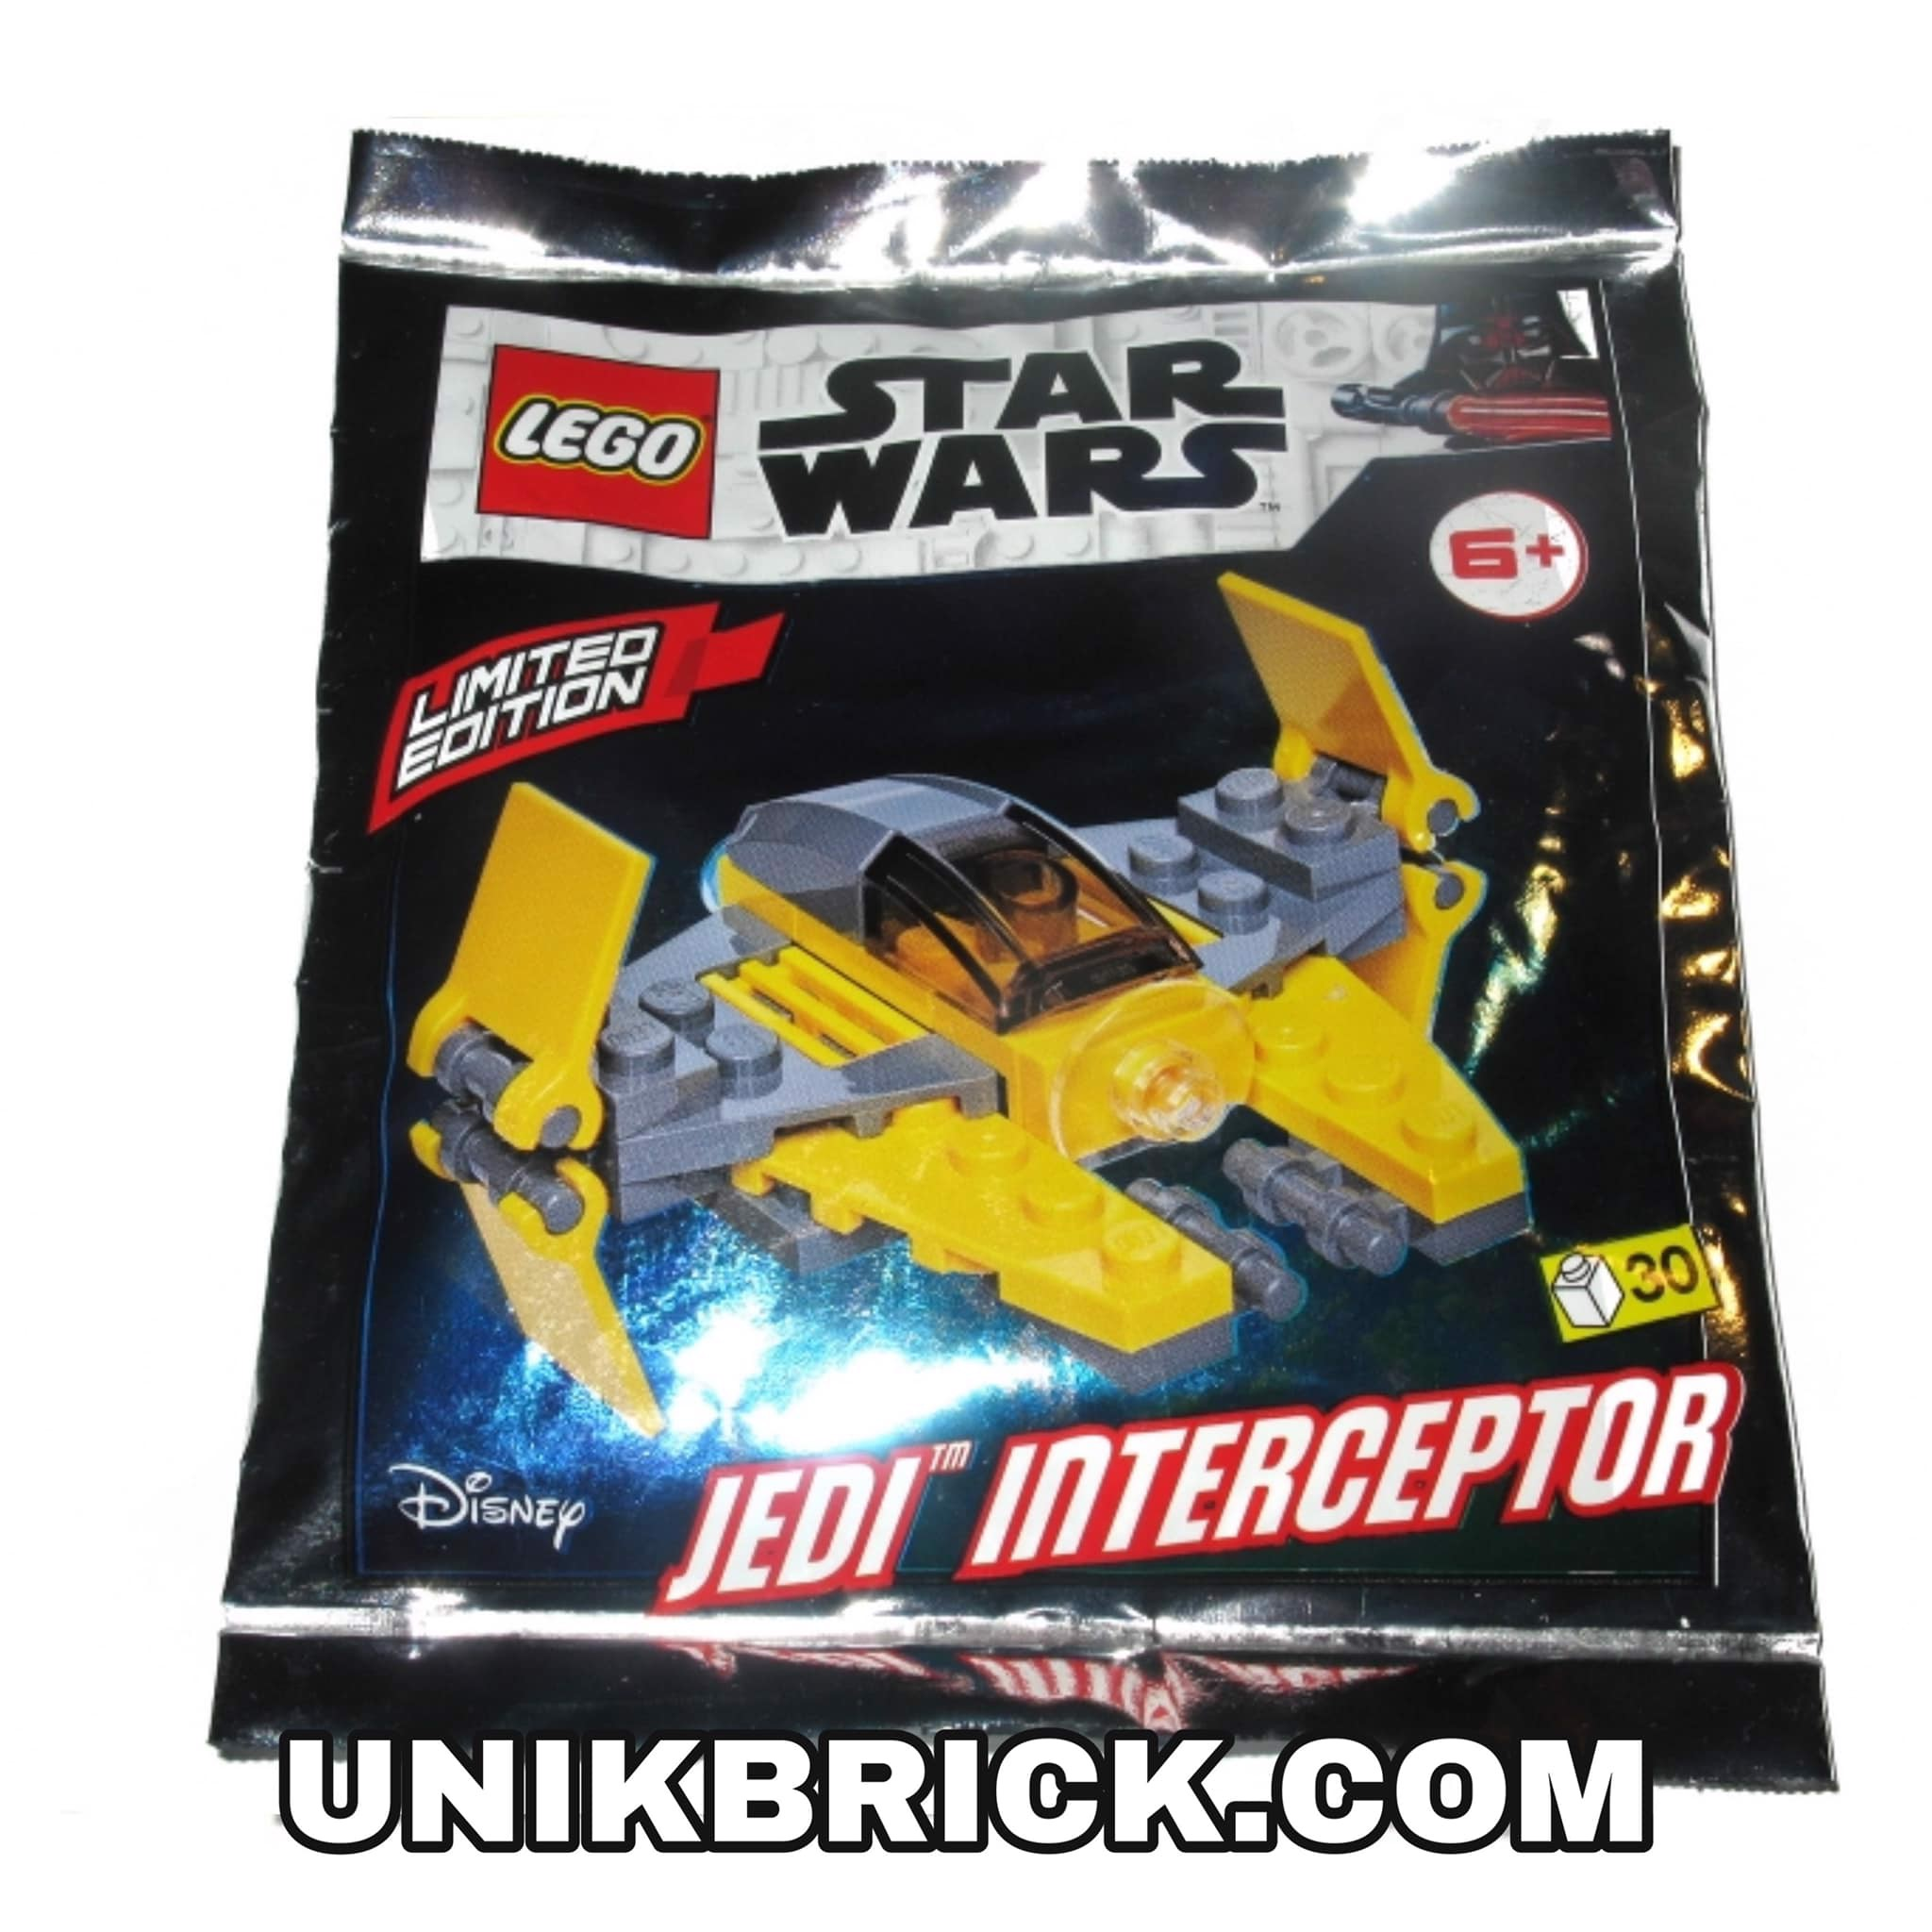 LEGO Star Wars 911952 Jedi Interceptor Foil Pack Polybag